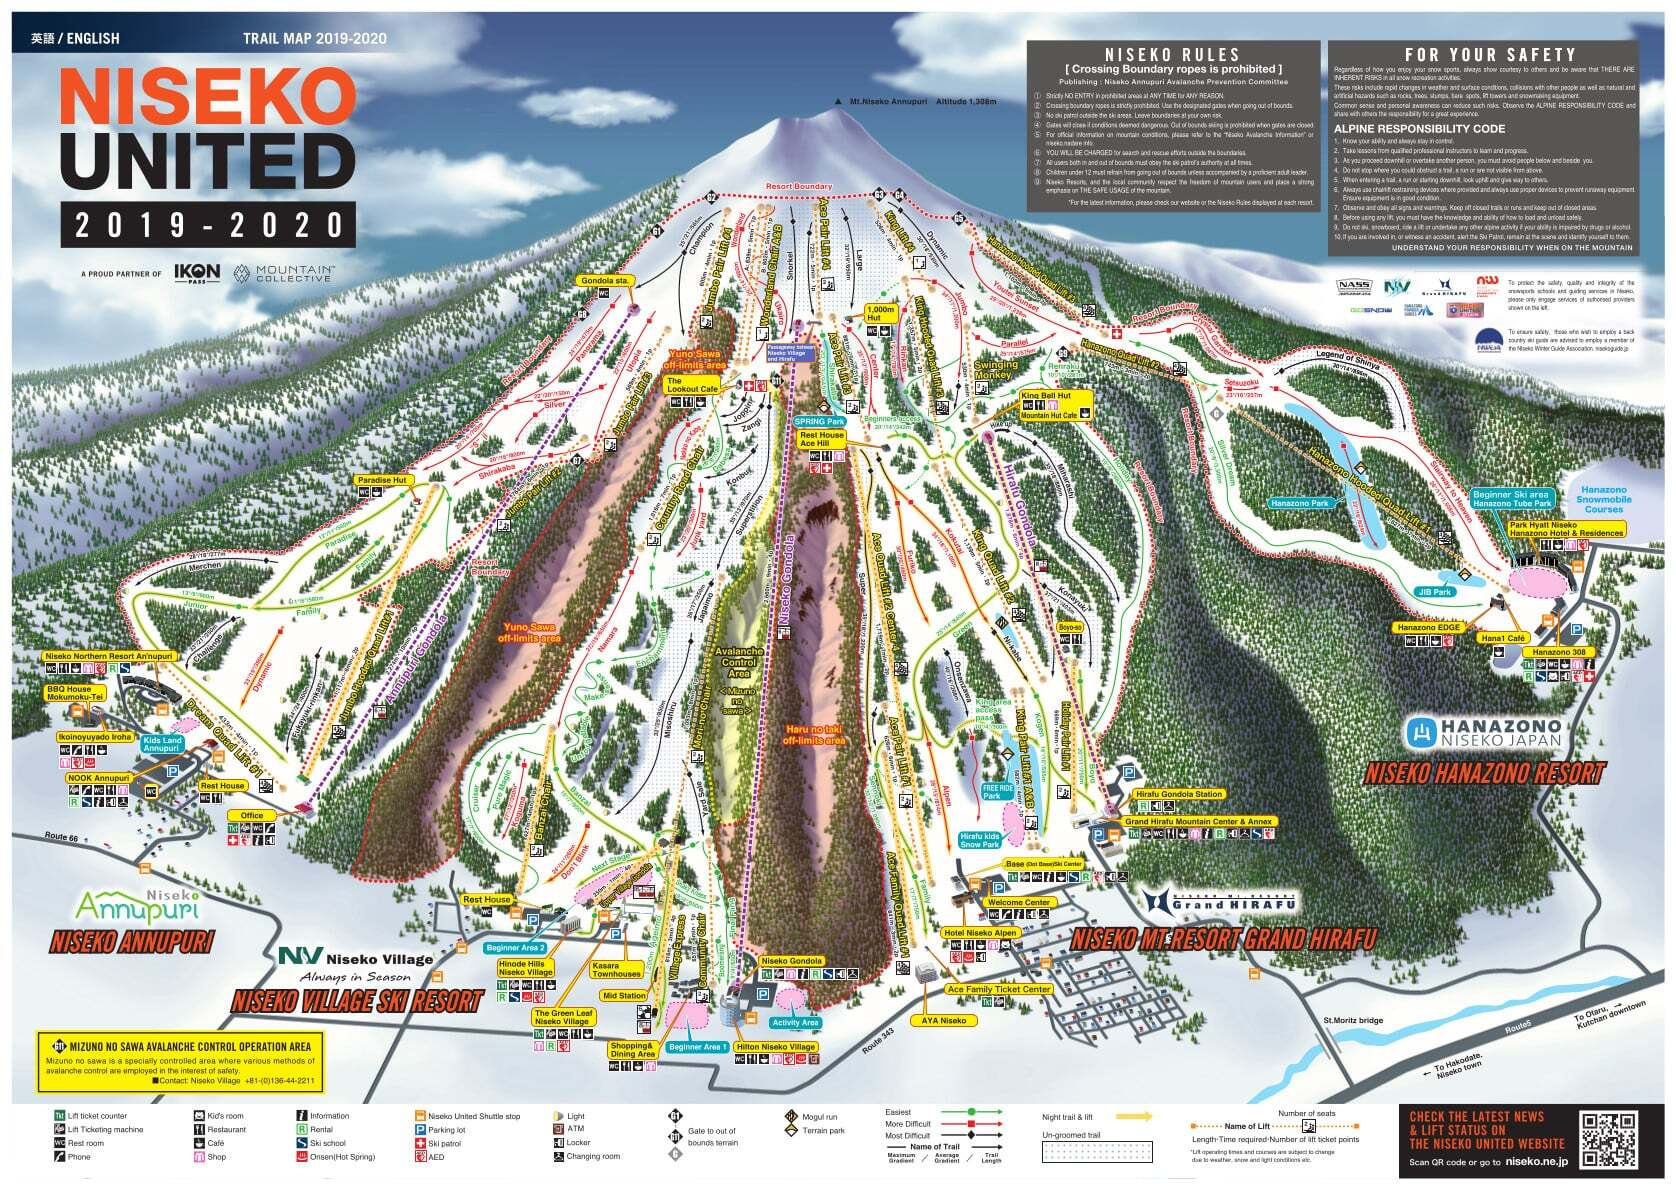 Niseko Annupuri Piste / Trail Map